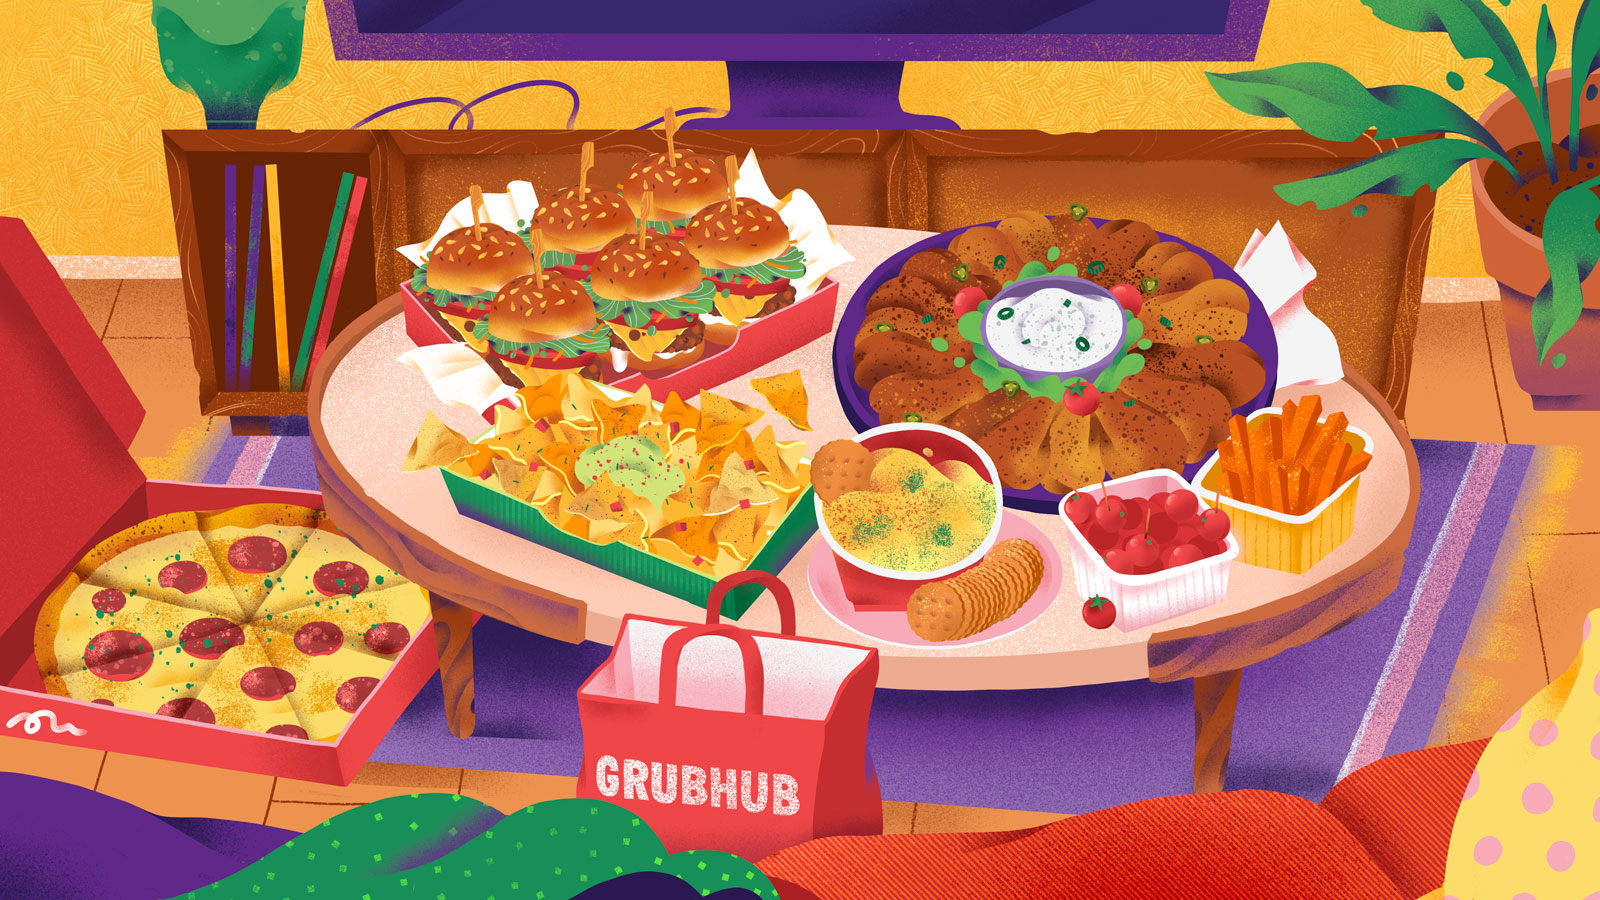 A colorful illustration of a living room, showing a coffee table filled with game-day party foods — wings, sliders, chips, crackers, and more.